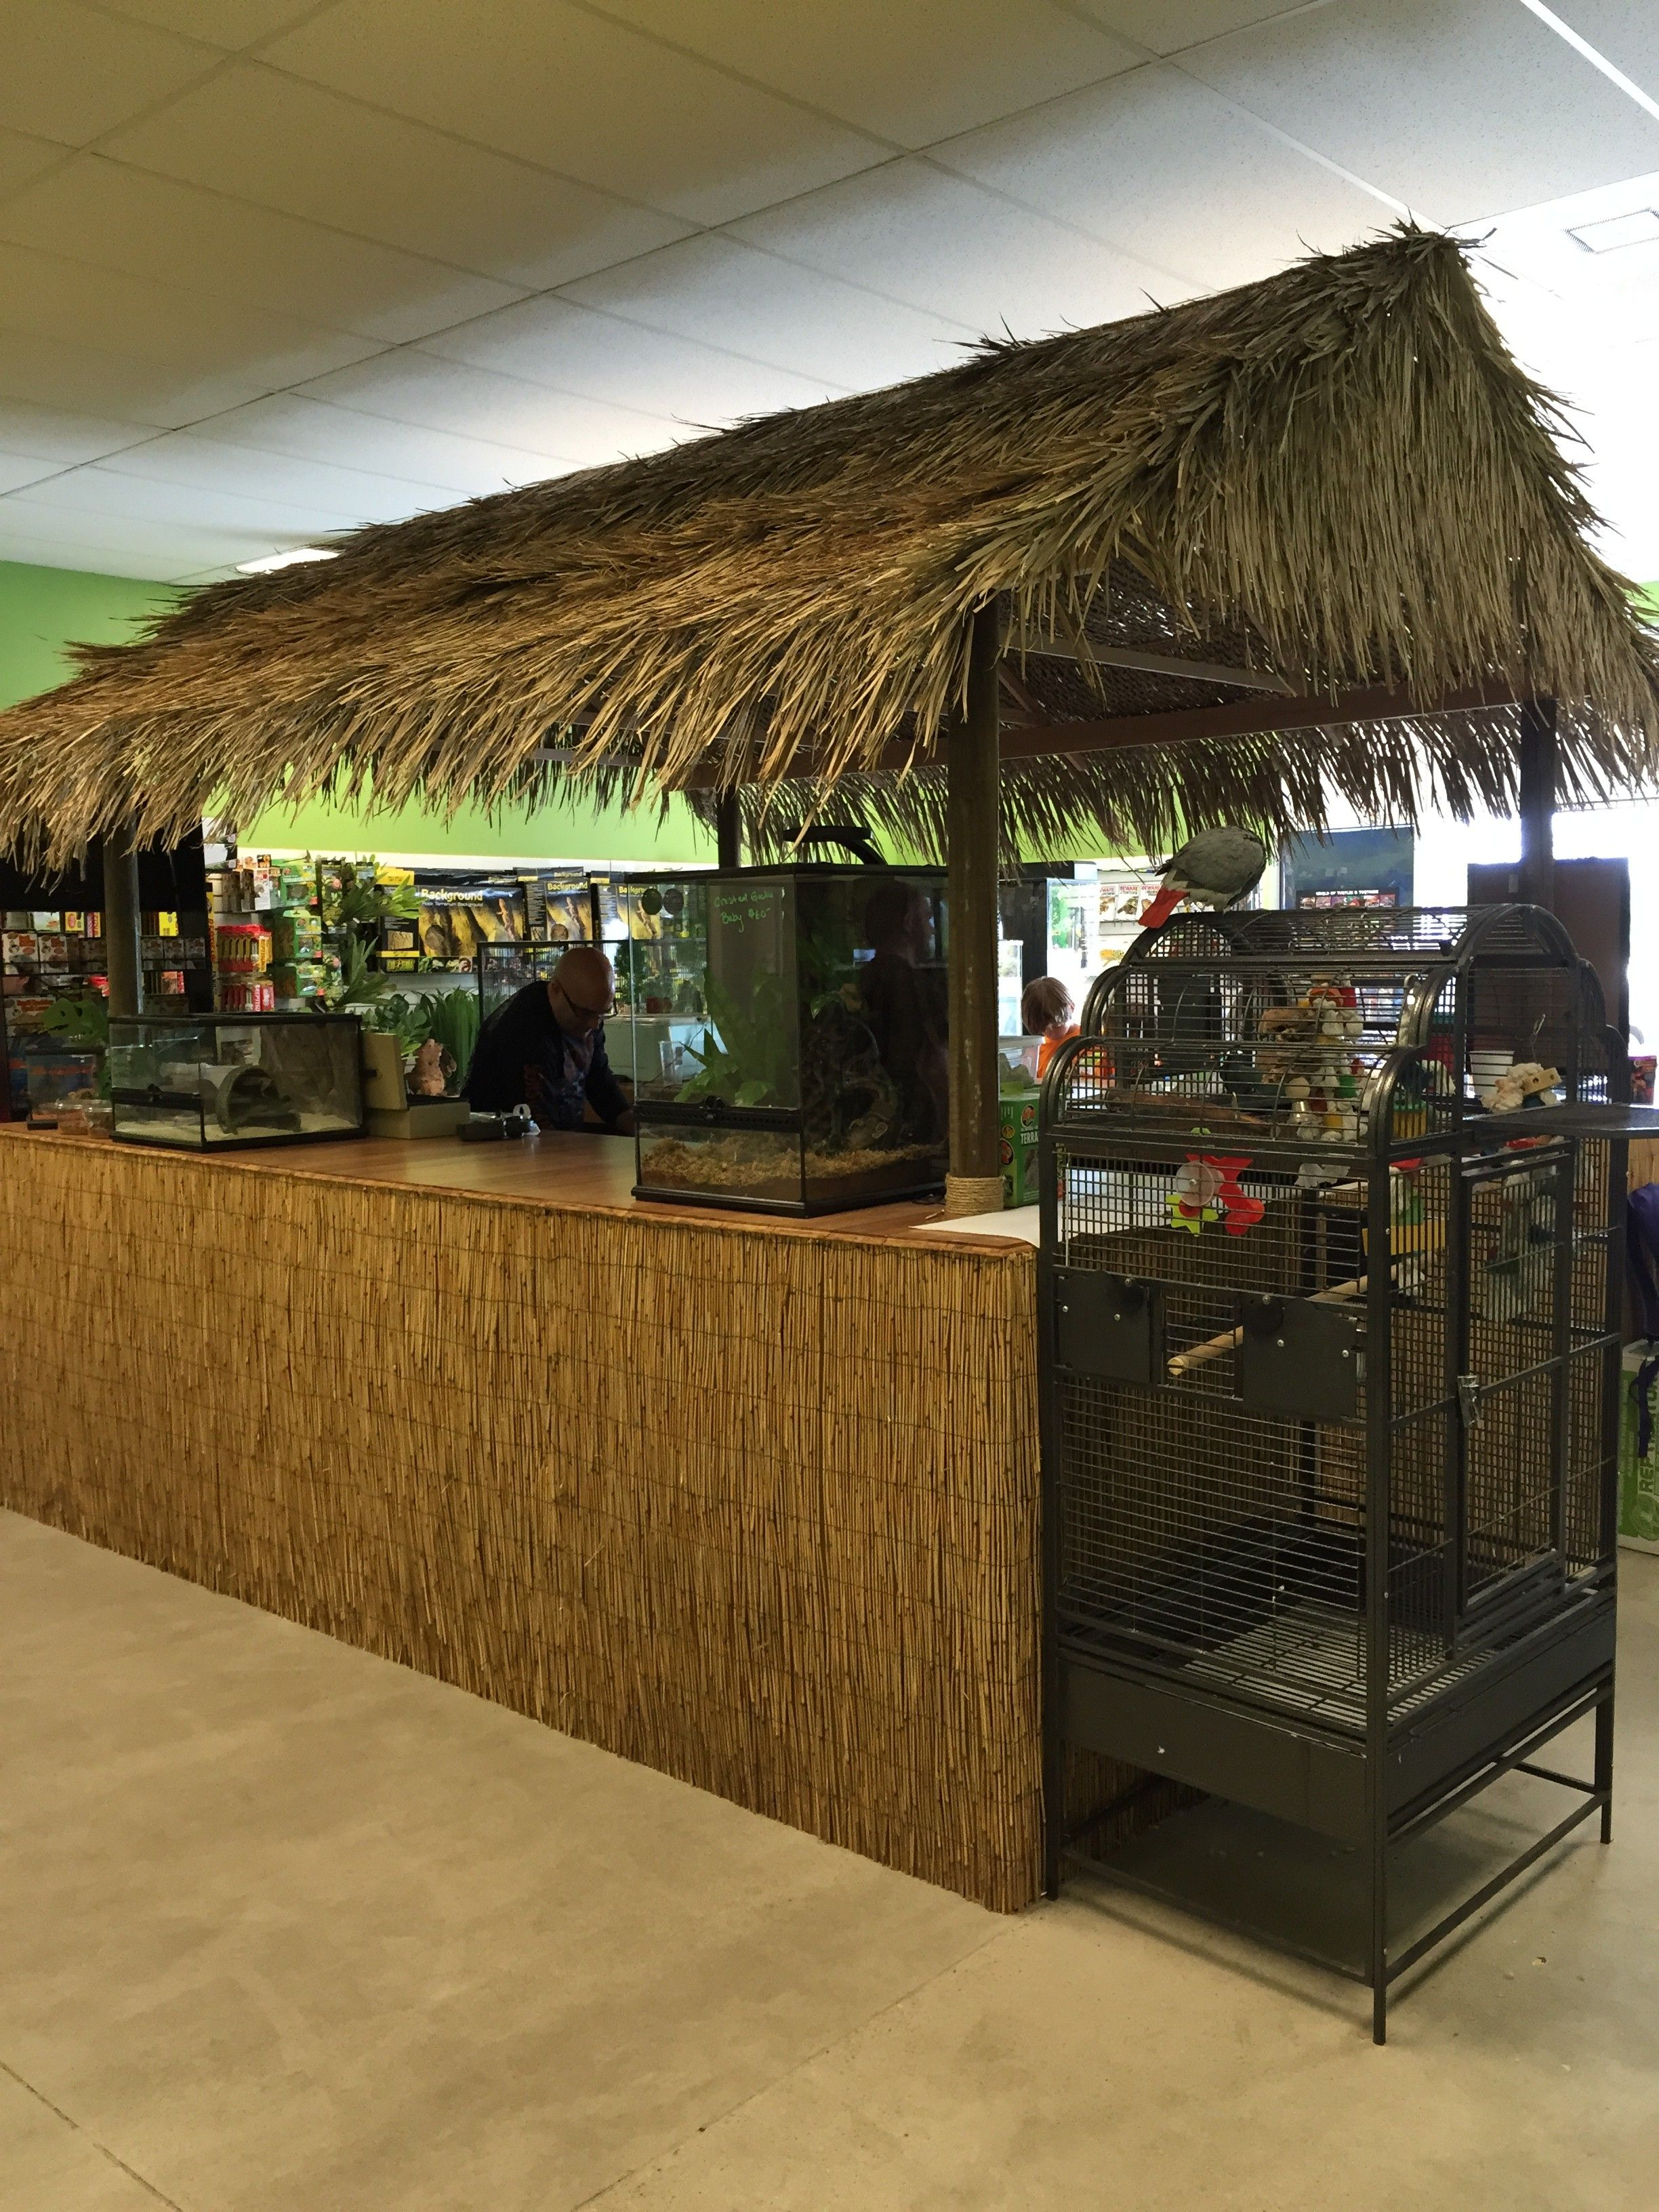 Redding Reptiles The Story Behind Your Local Reptile Store Reptile Store Reptiles And Amphibians Pet Store